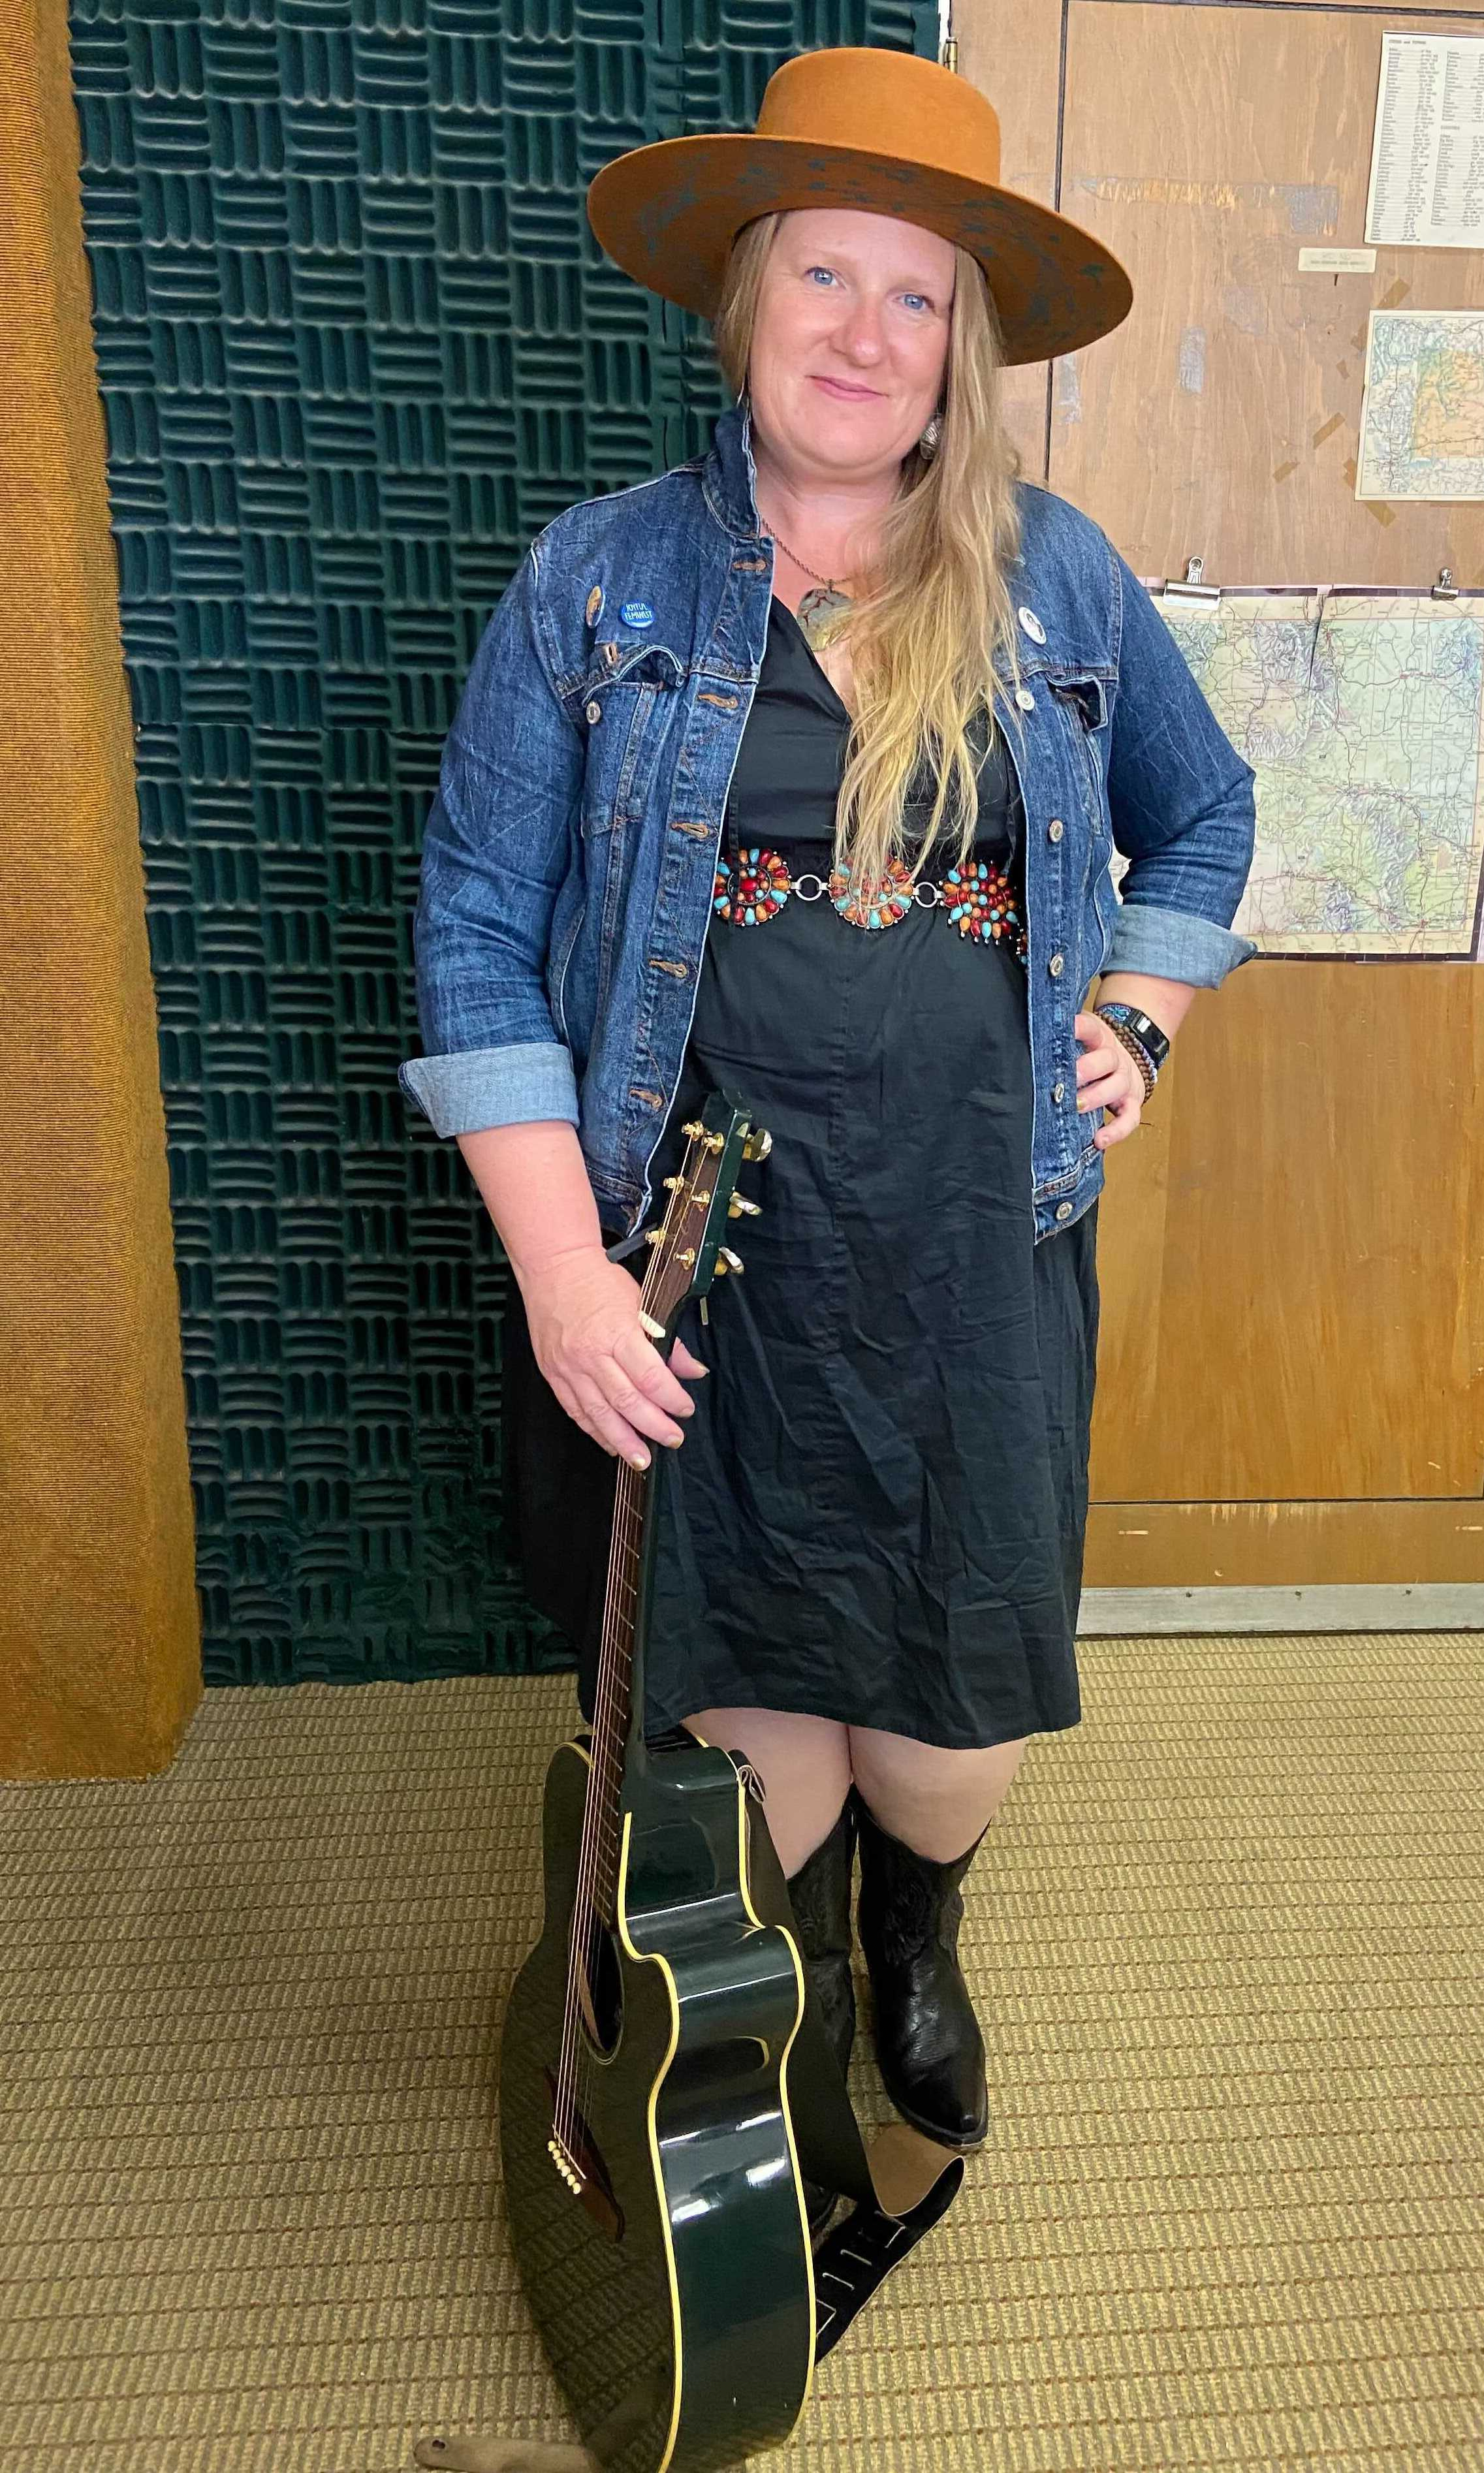 Singer-Songwriter Rigby Summer On Wyoming Sounds